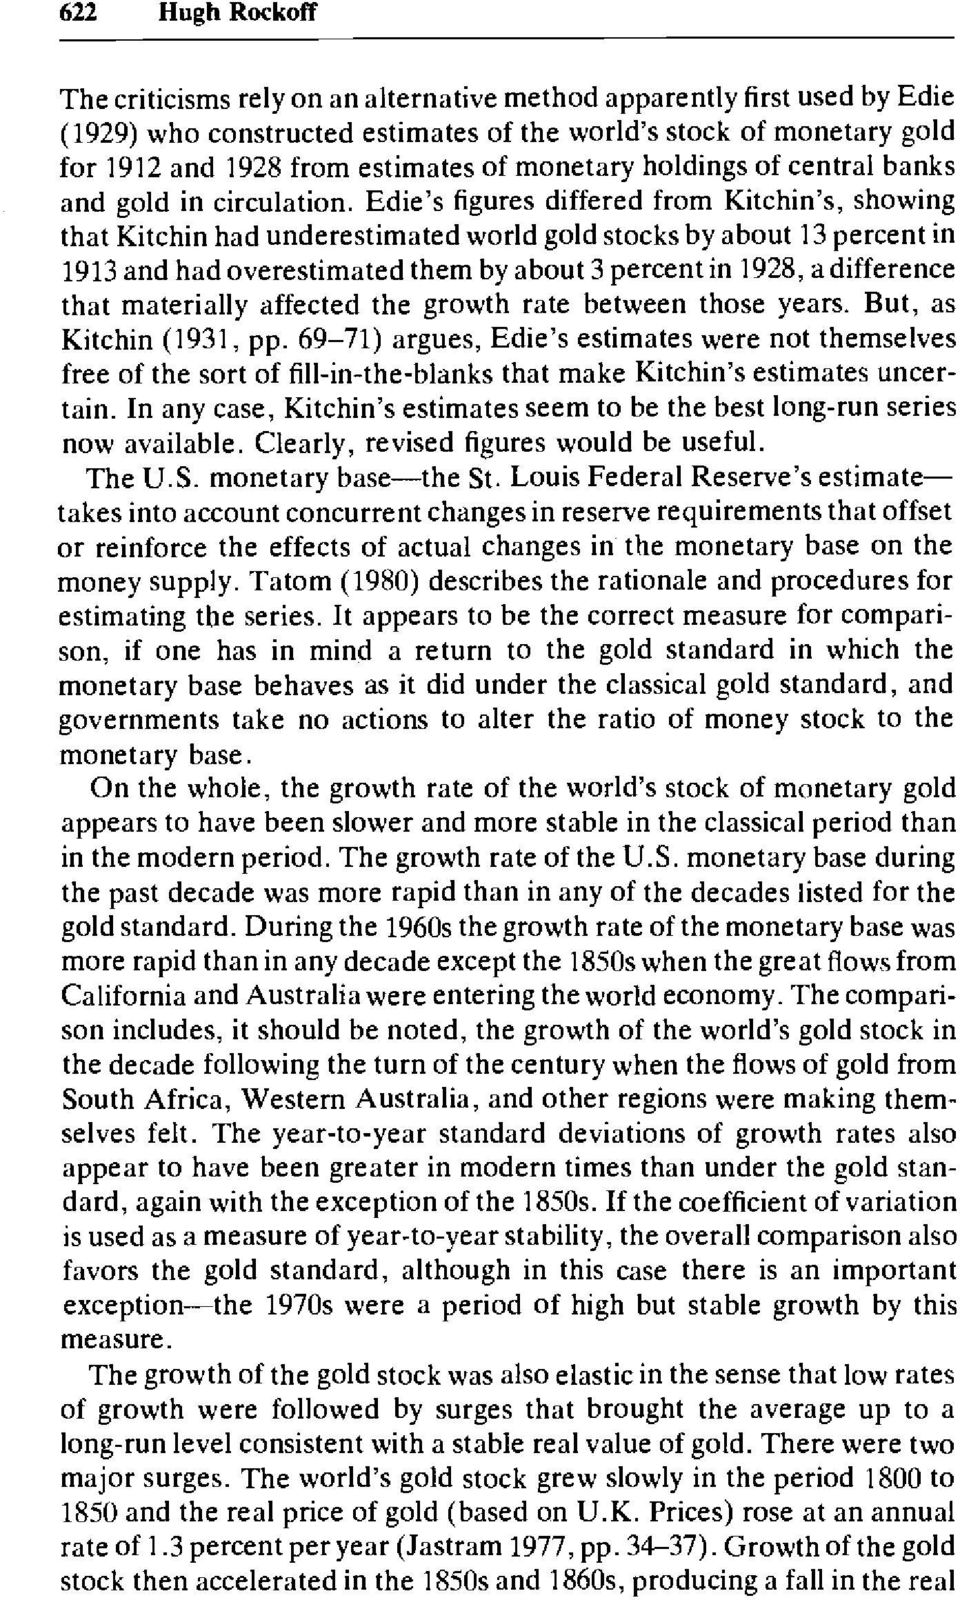 Edie's figures differed from Kitchin's, showing that Kitchin had underestimated world gold stocks by about 13 percent in 1913 and had overestimated them by about 3 percent in 1928, a difference that